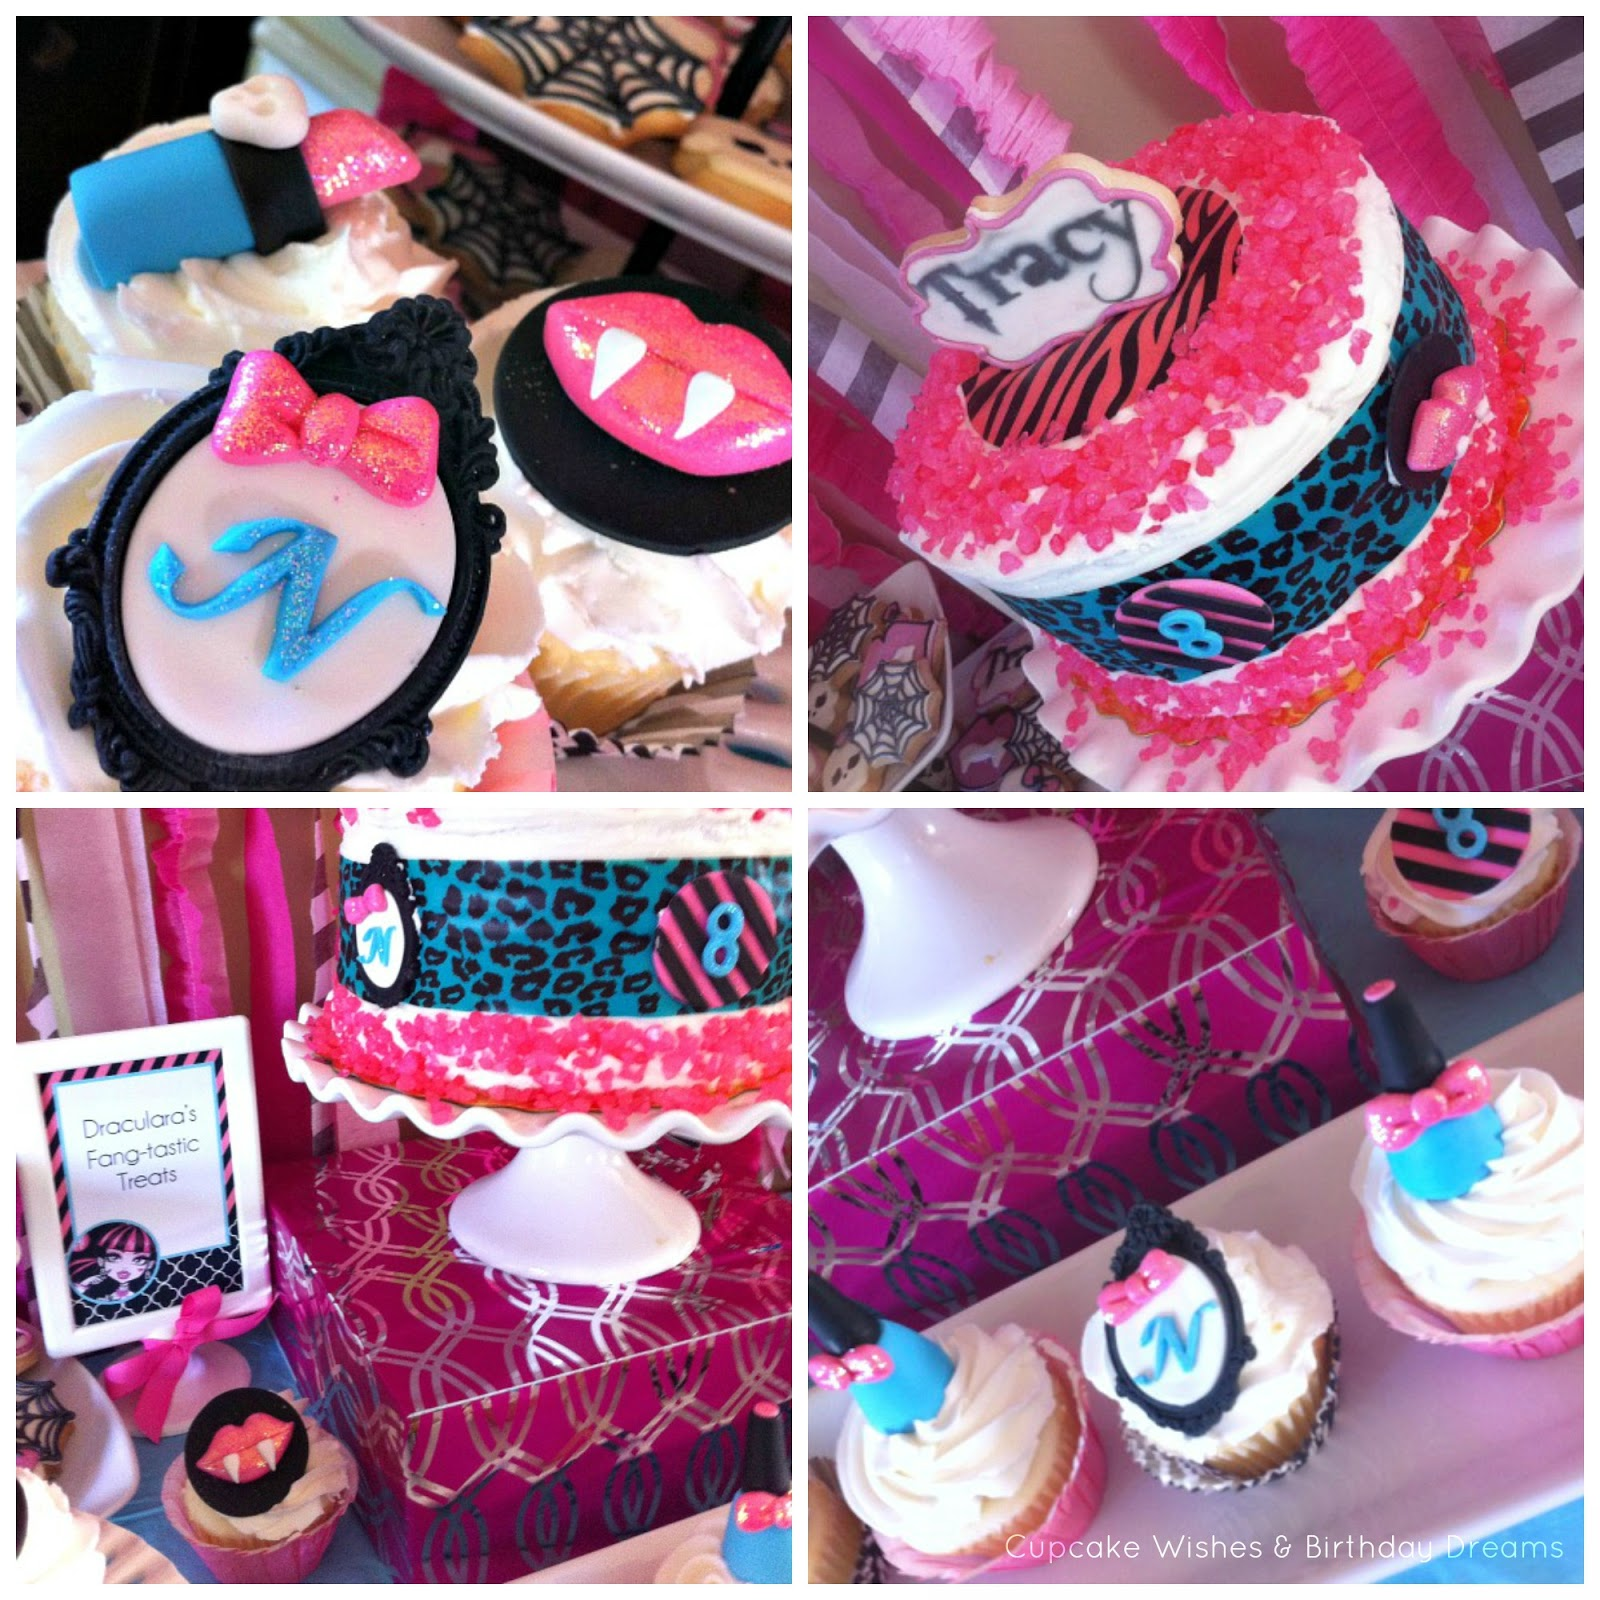 Outstanding Cupcake Wishes Birthday Dreams Cupcake Monday Monster High Personalised Birthday Cards Beptaeletsinfo